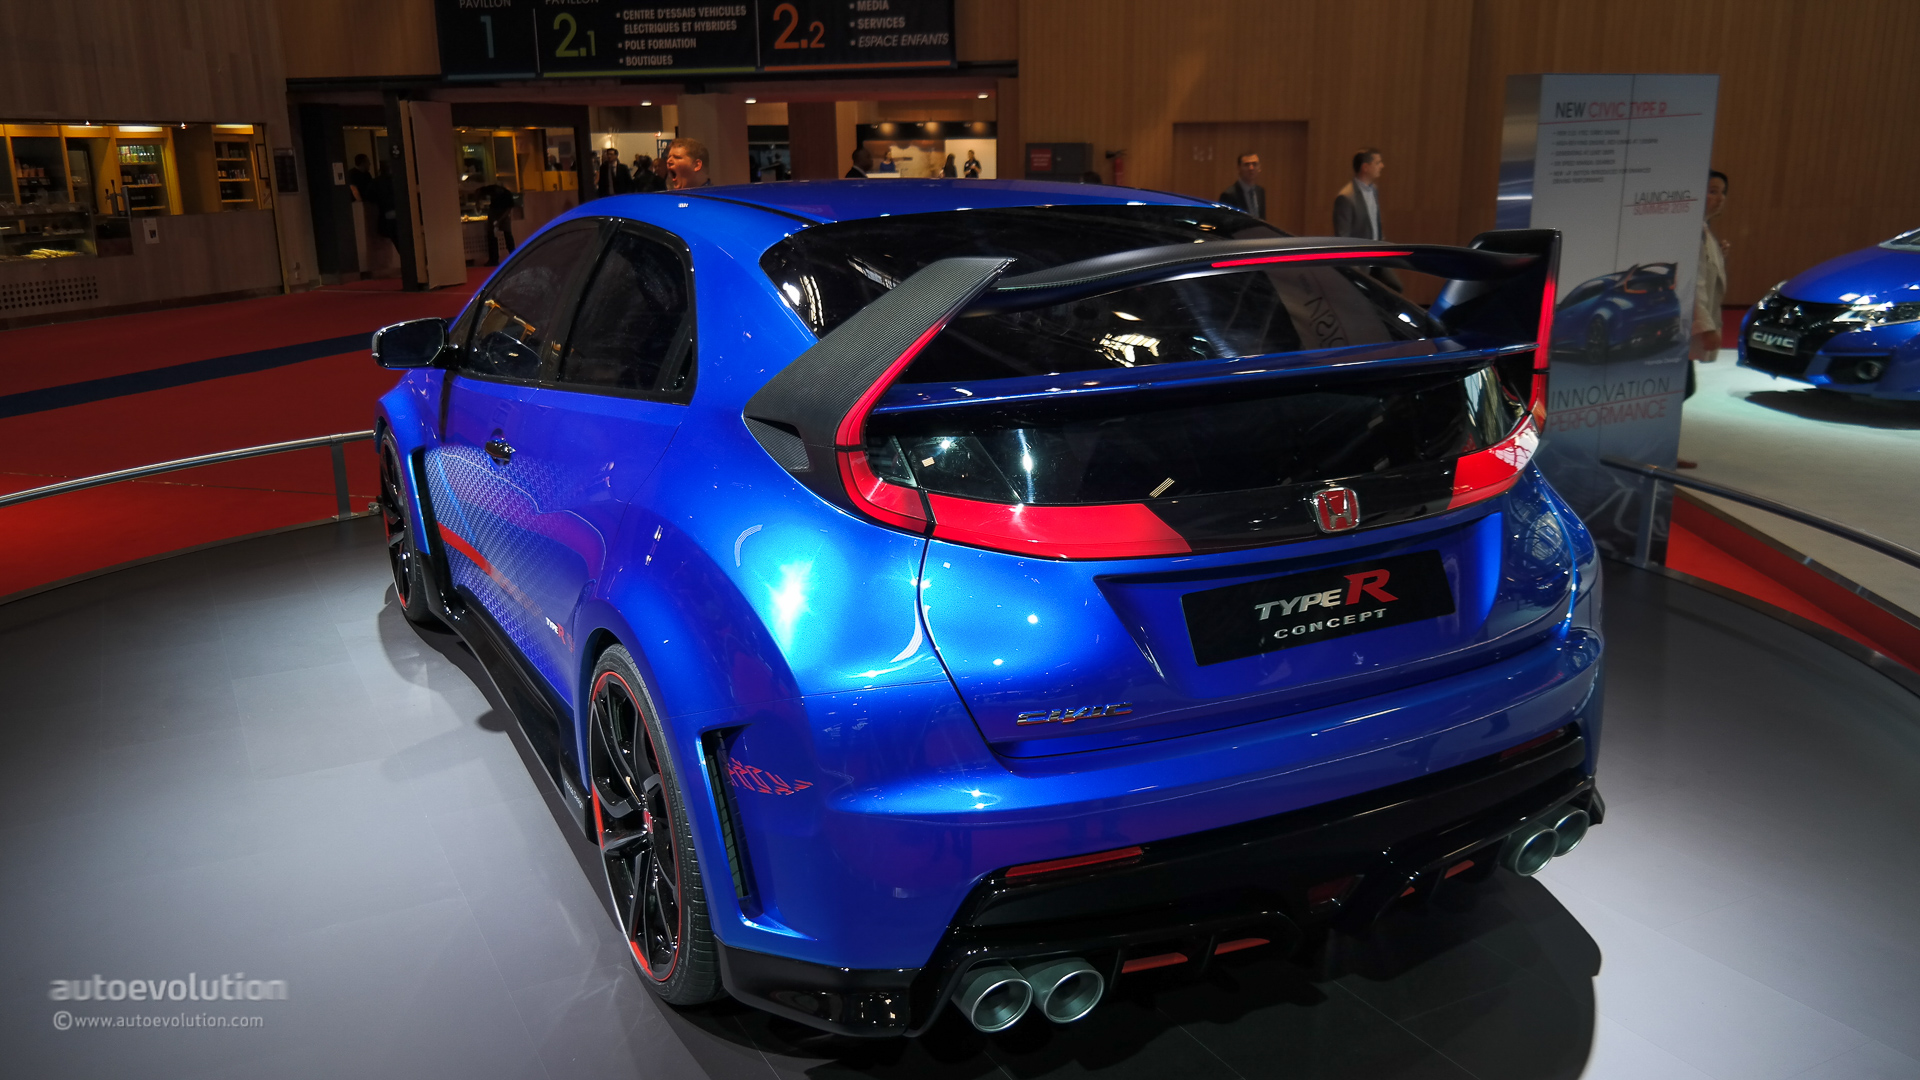 2015 Honda Civic Type R will Debut on March 2 - autoevolution